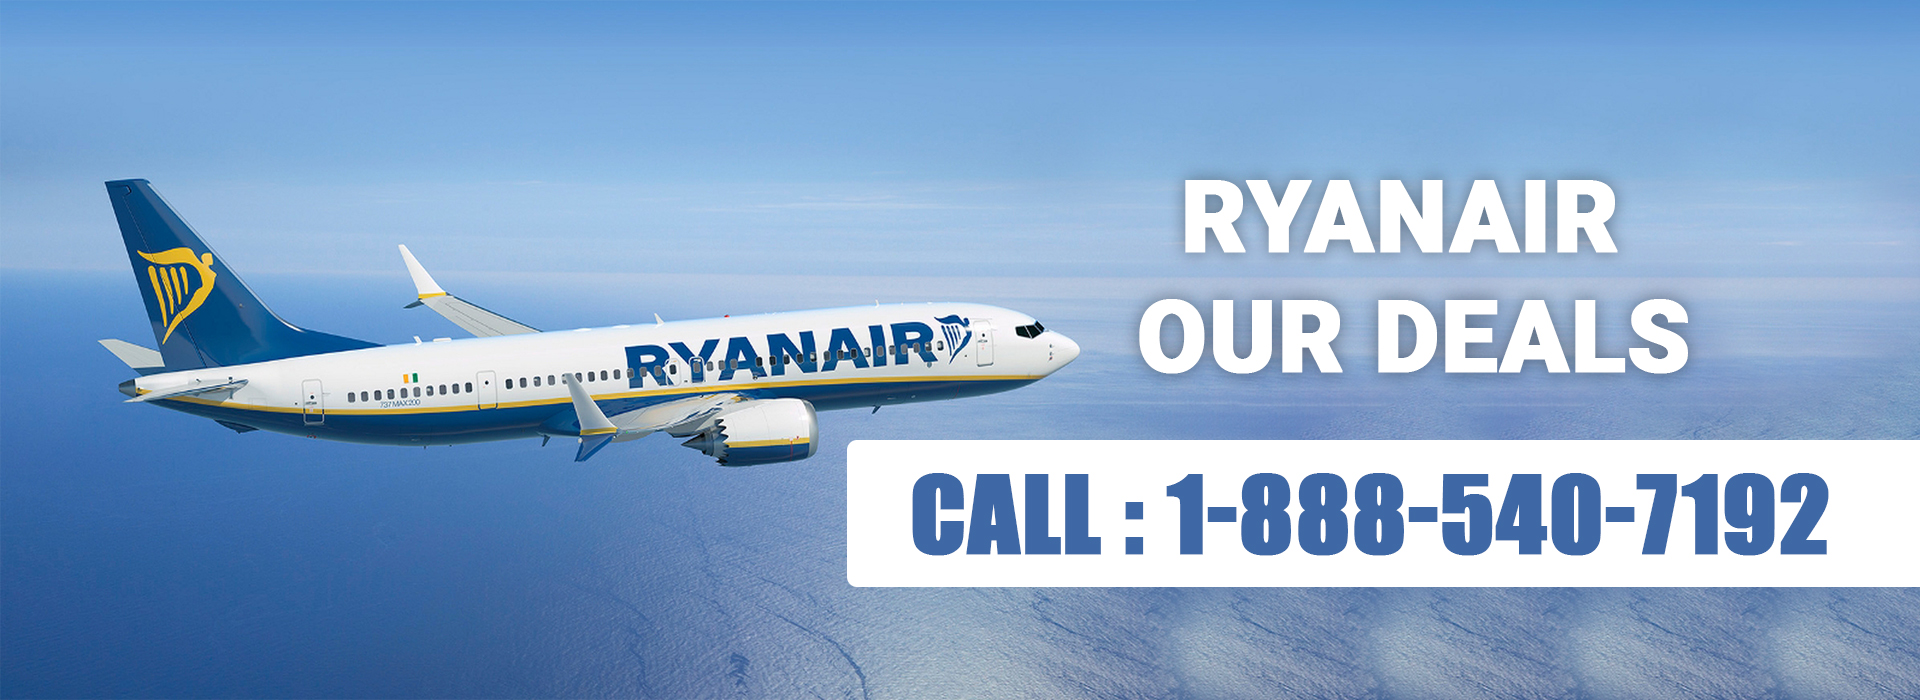 RyanAir Customer Service 1-888-540-7192